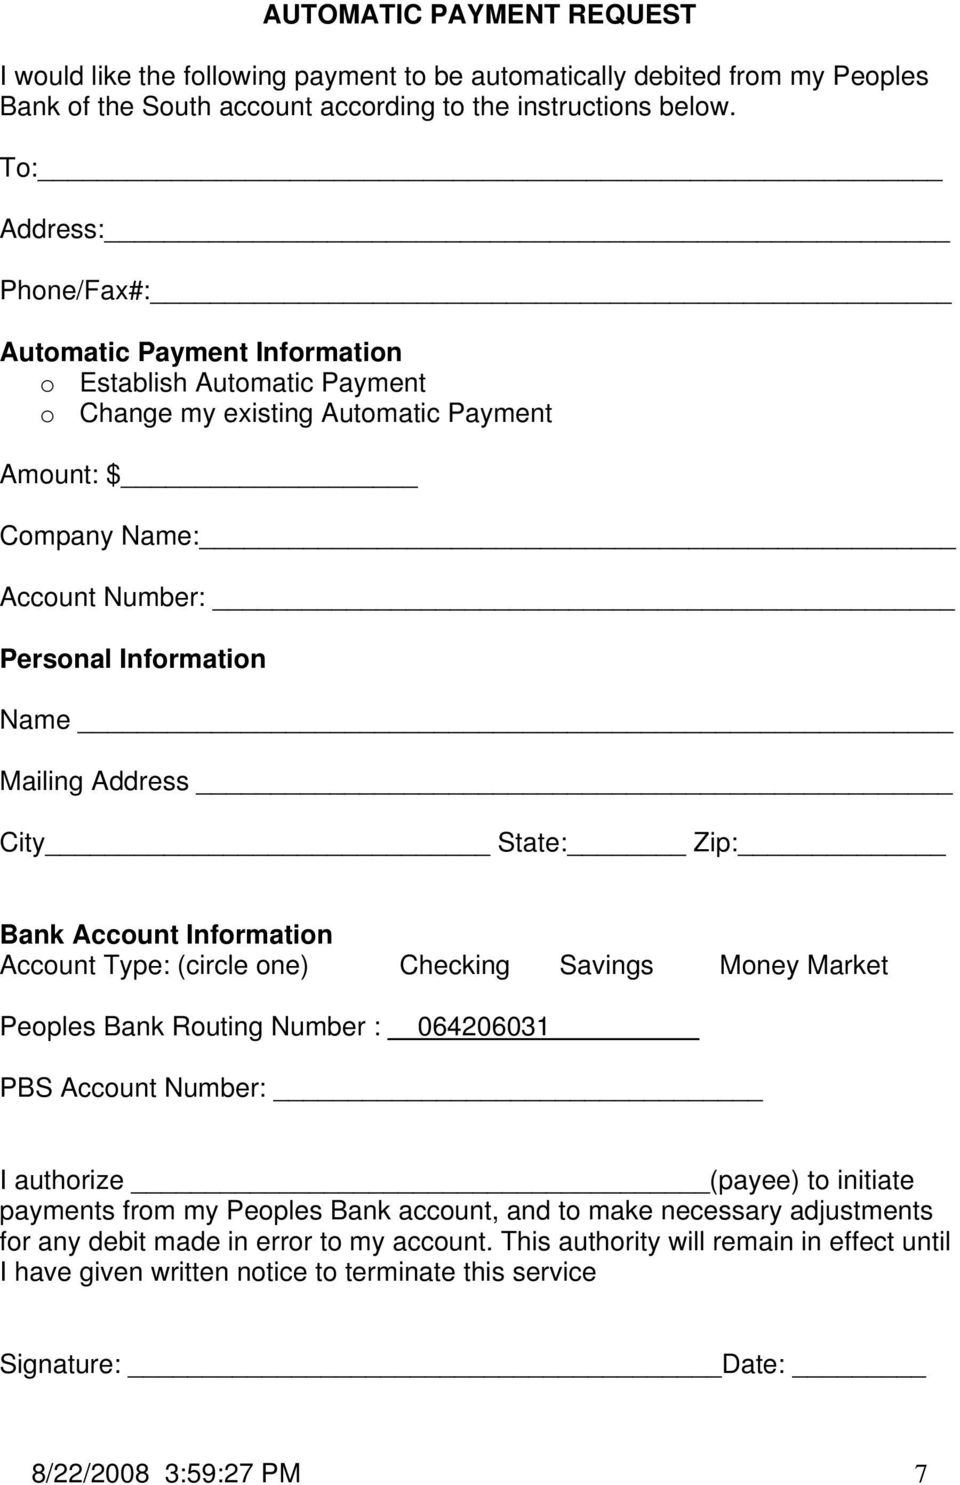 Address City State: Zip: Bank Account Information Account Type: (circle one) Checking Savings Money Market Peoples Bank Routing Number : 064206031 PBS Account Number: I authorize (payee) to initiate